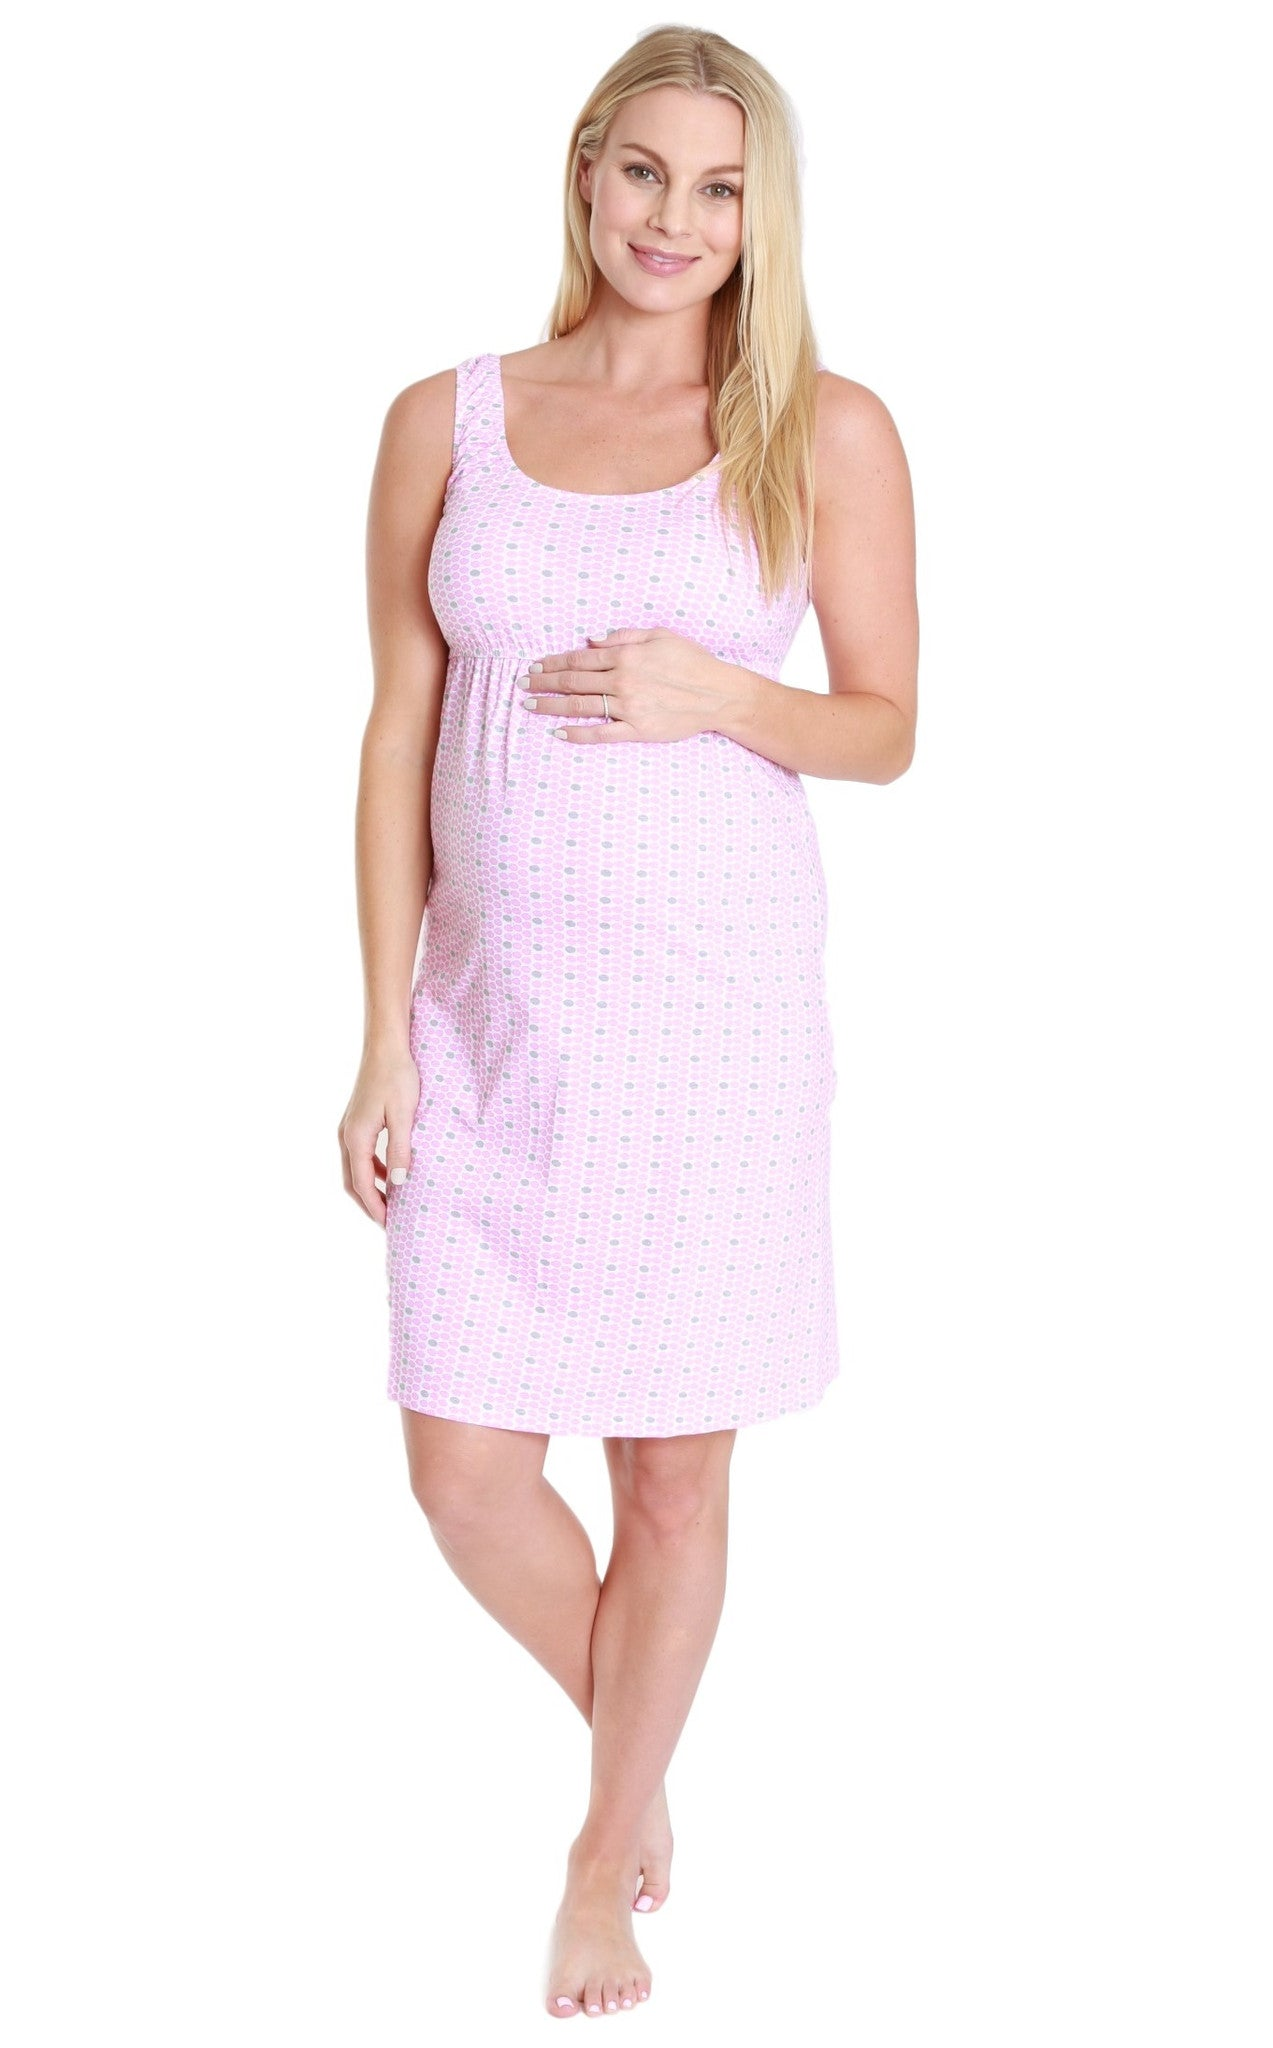 Chloe Maternity/Nursing Sleeveless Nightgown